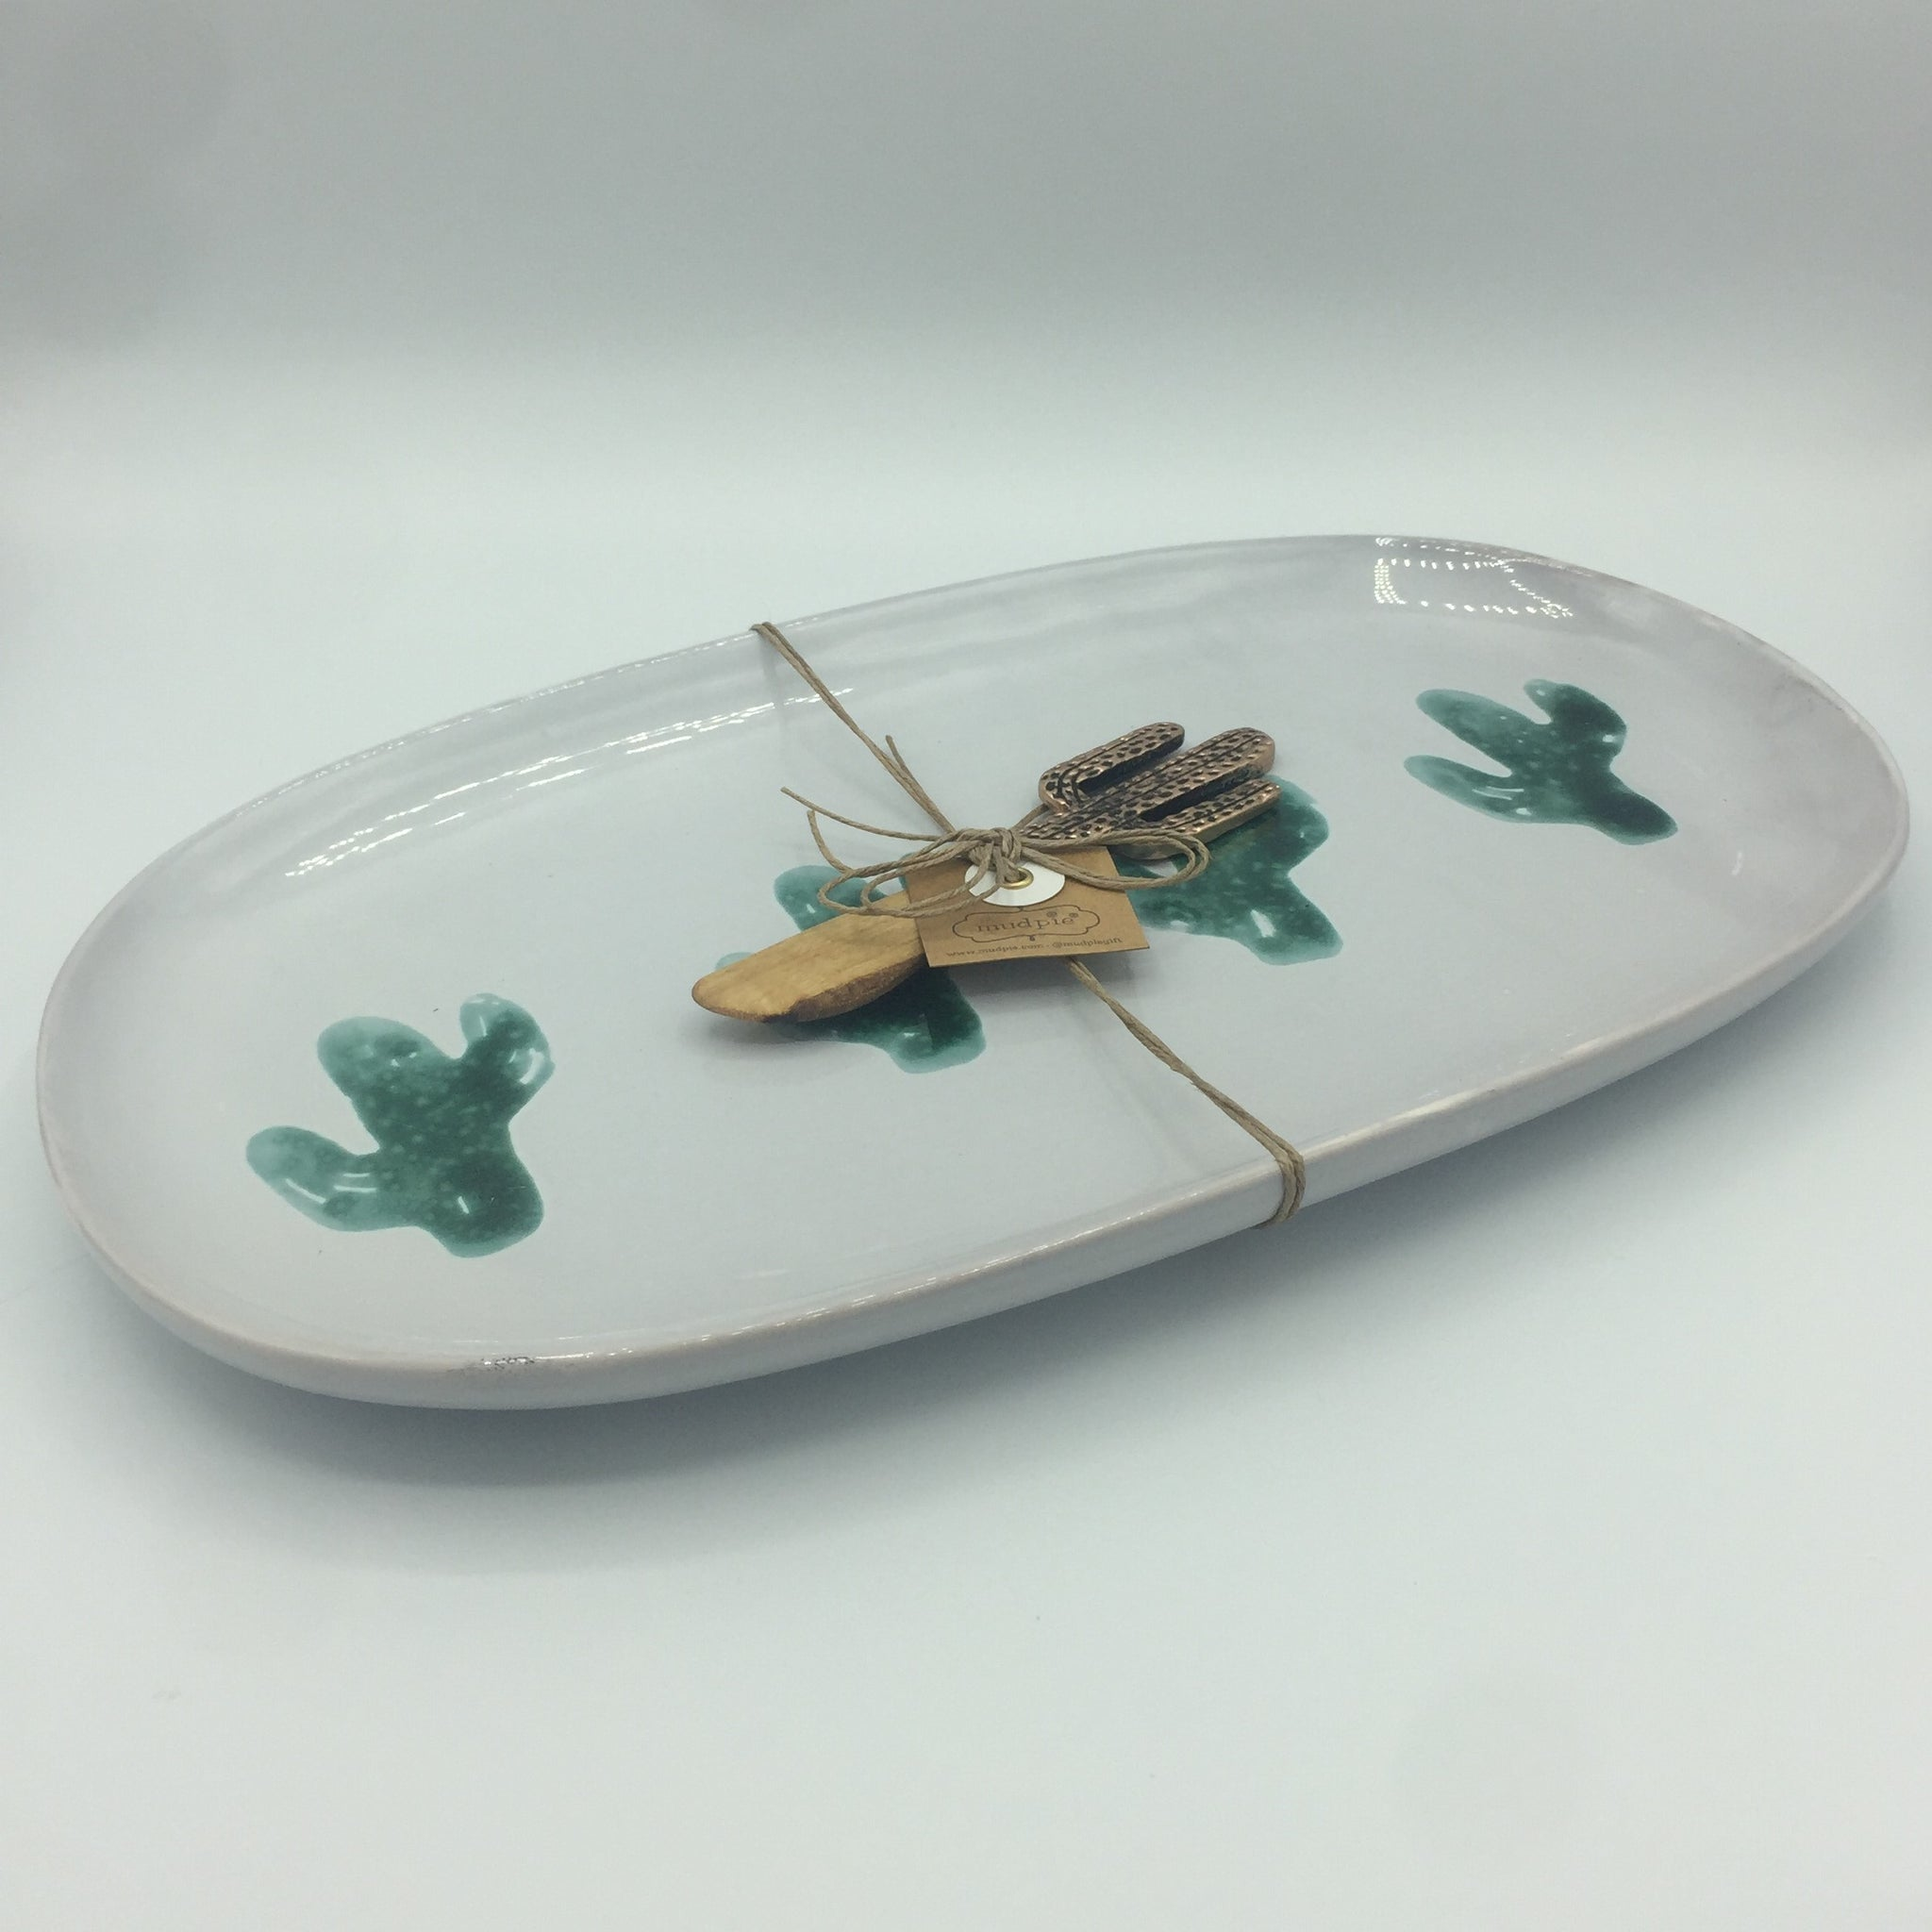 Cheese Ball Platter with Cactus Spreader